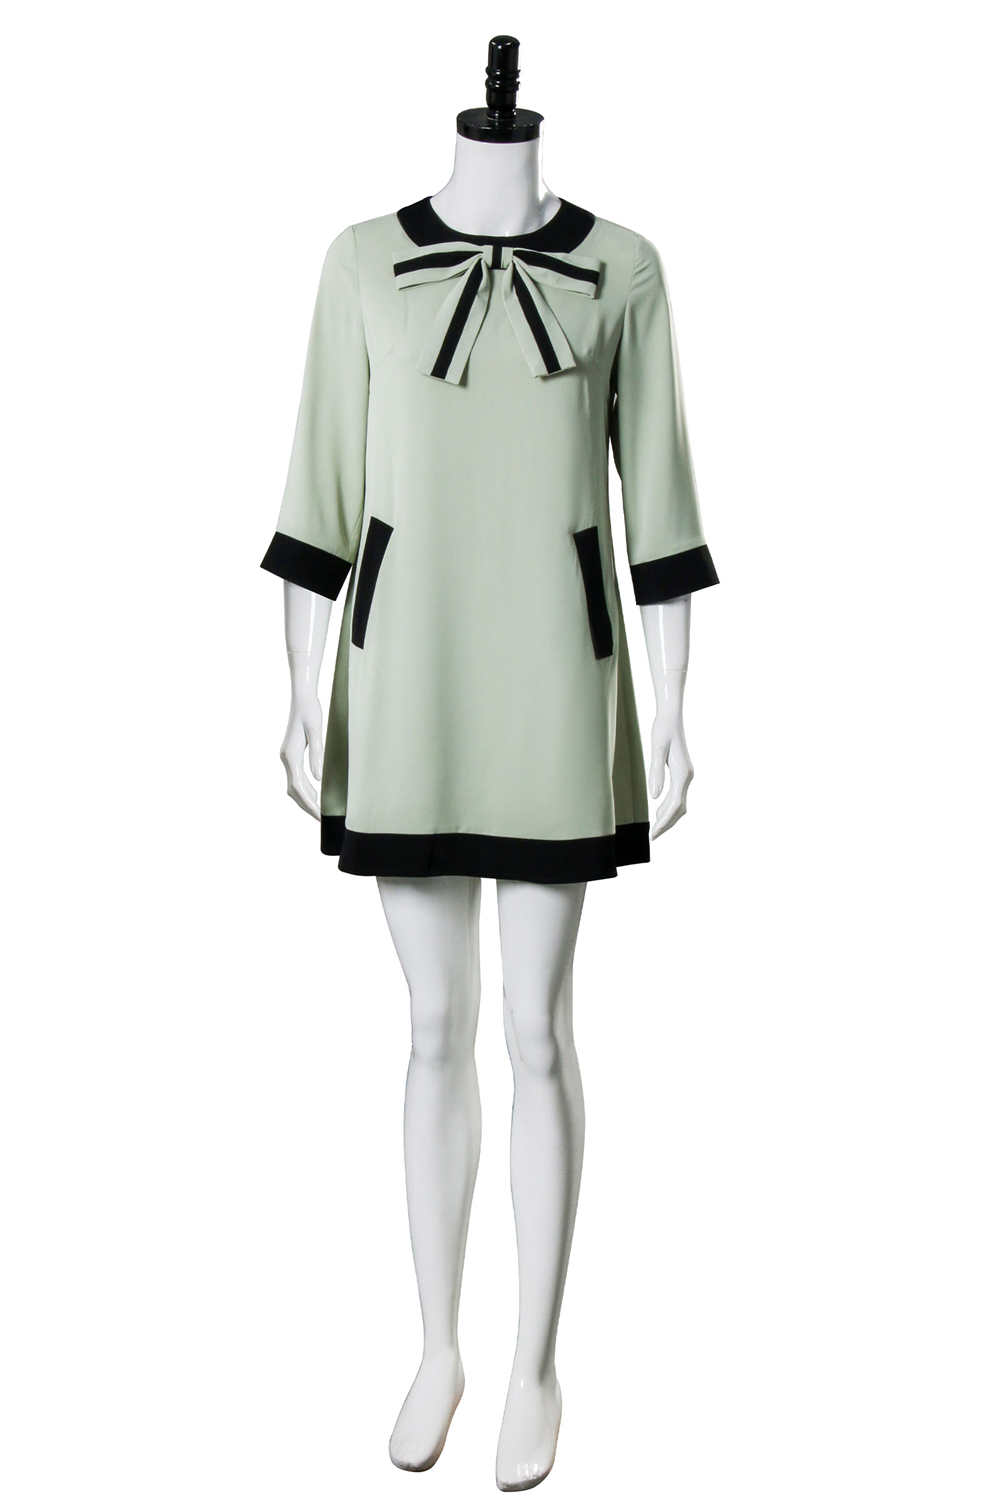 The Queen's Gambit Beth Harmon Vintage 60s Cosplay Costume Dress Adults Women